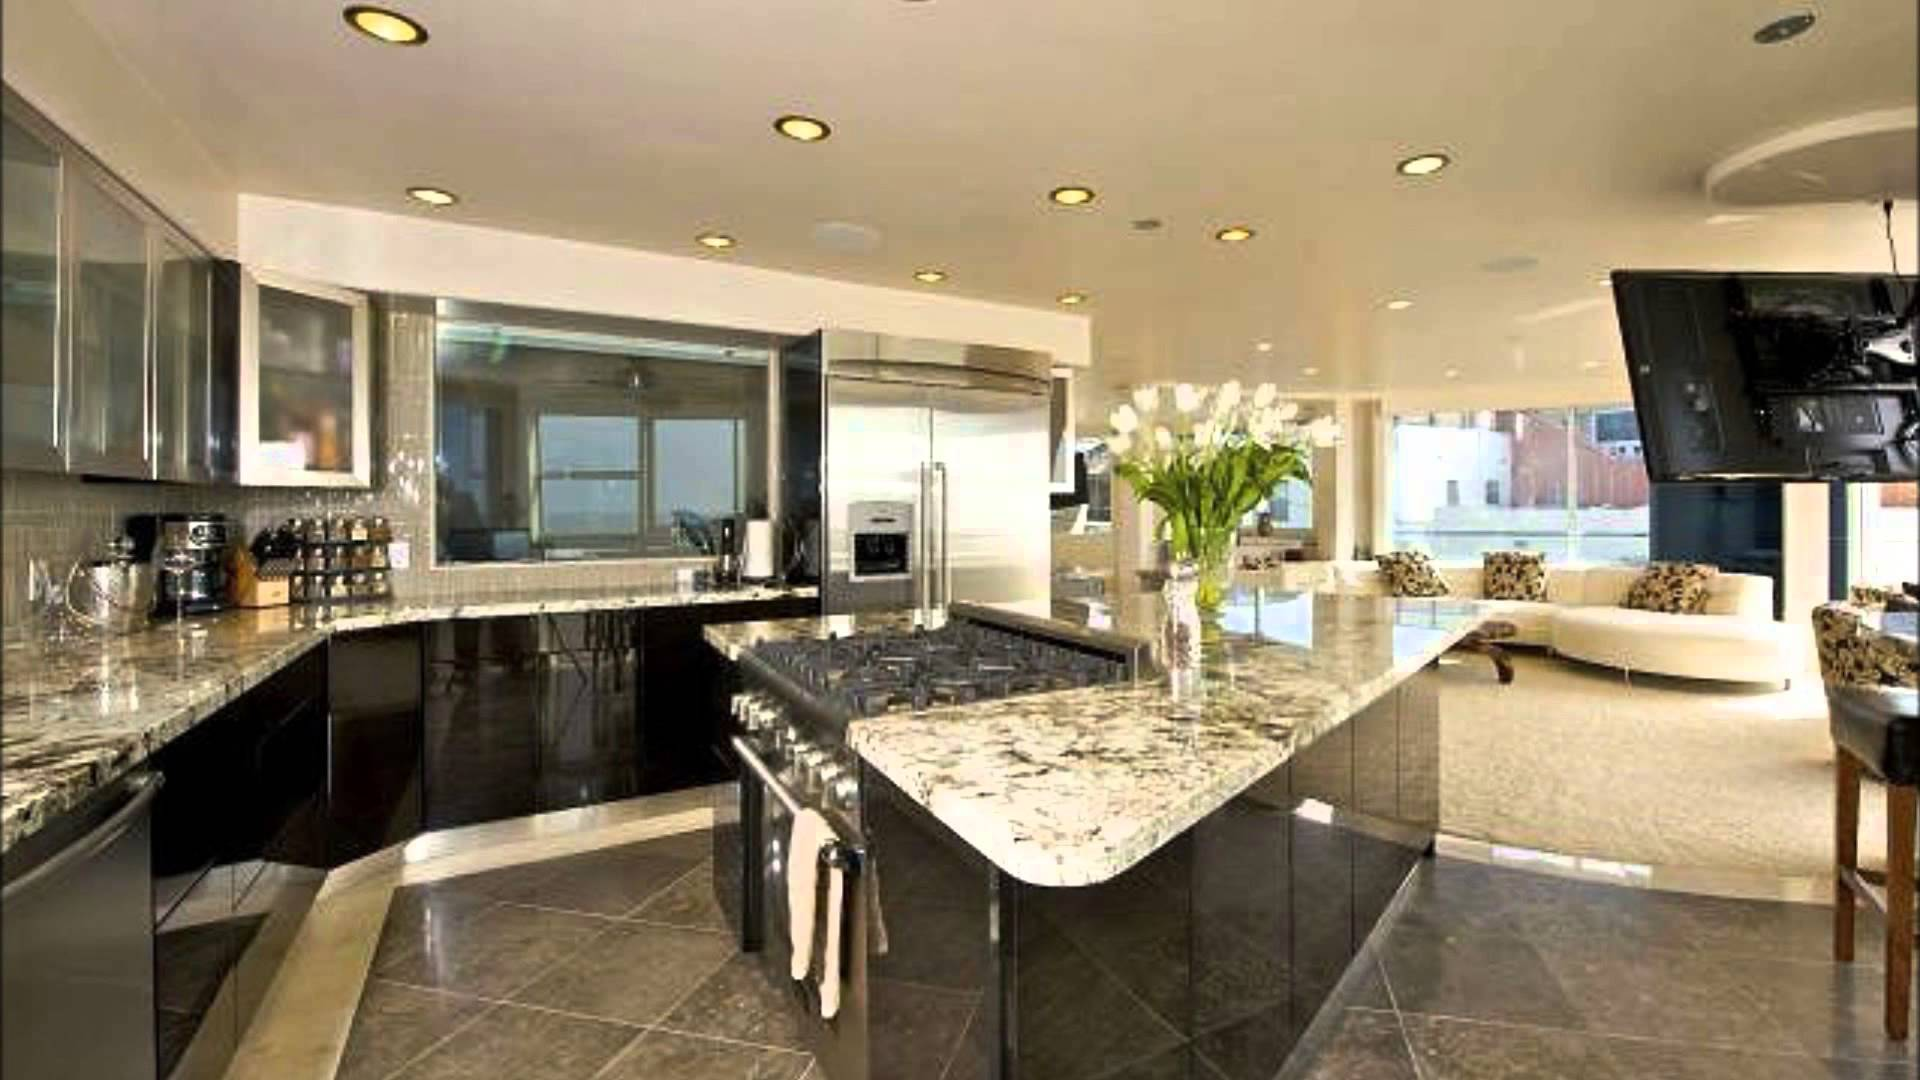 Design your own kitchen ideas with images for Kitchen designs ideas